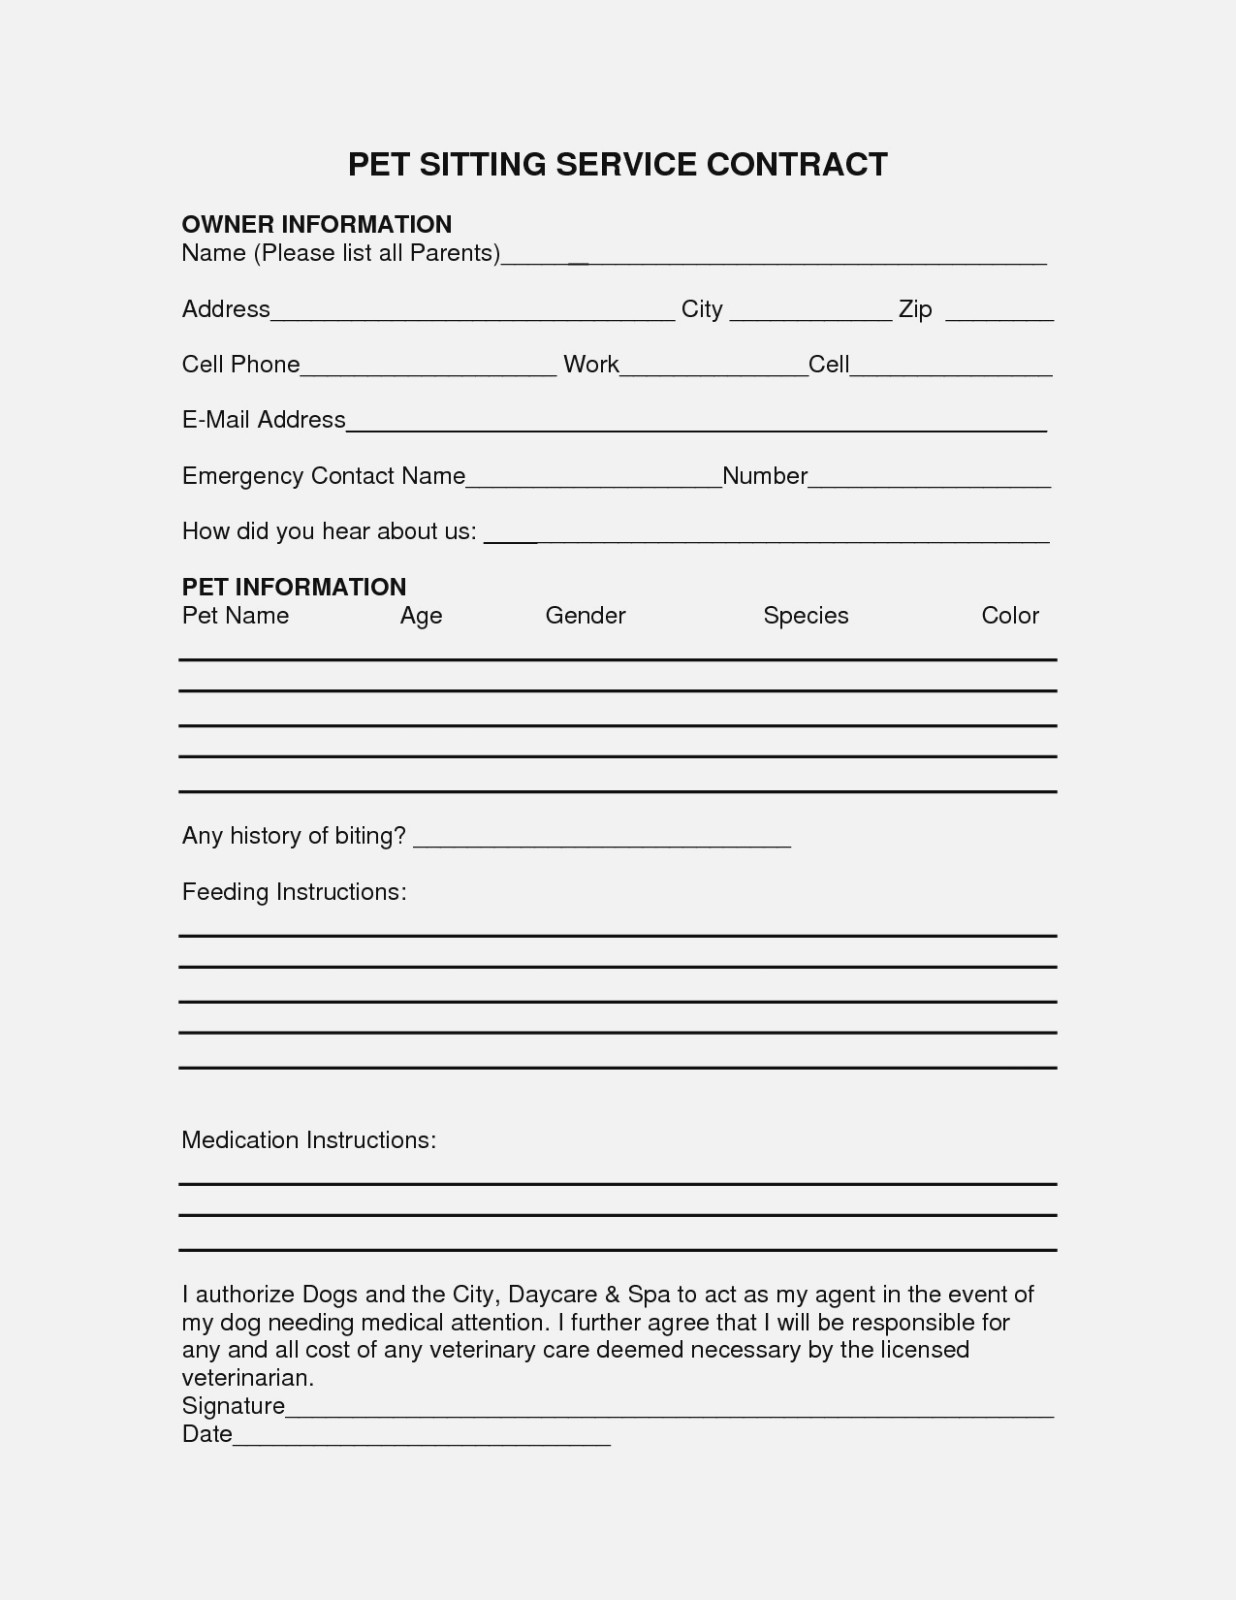 Free Printable Caregiver Forms Luxury Medical Permission Letter - Free Printable Caregiver Forms